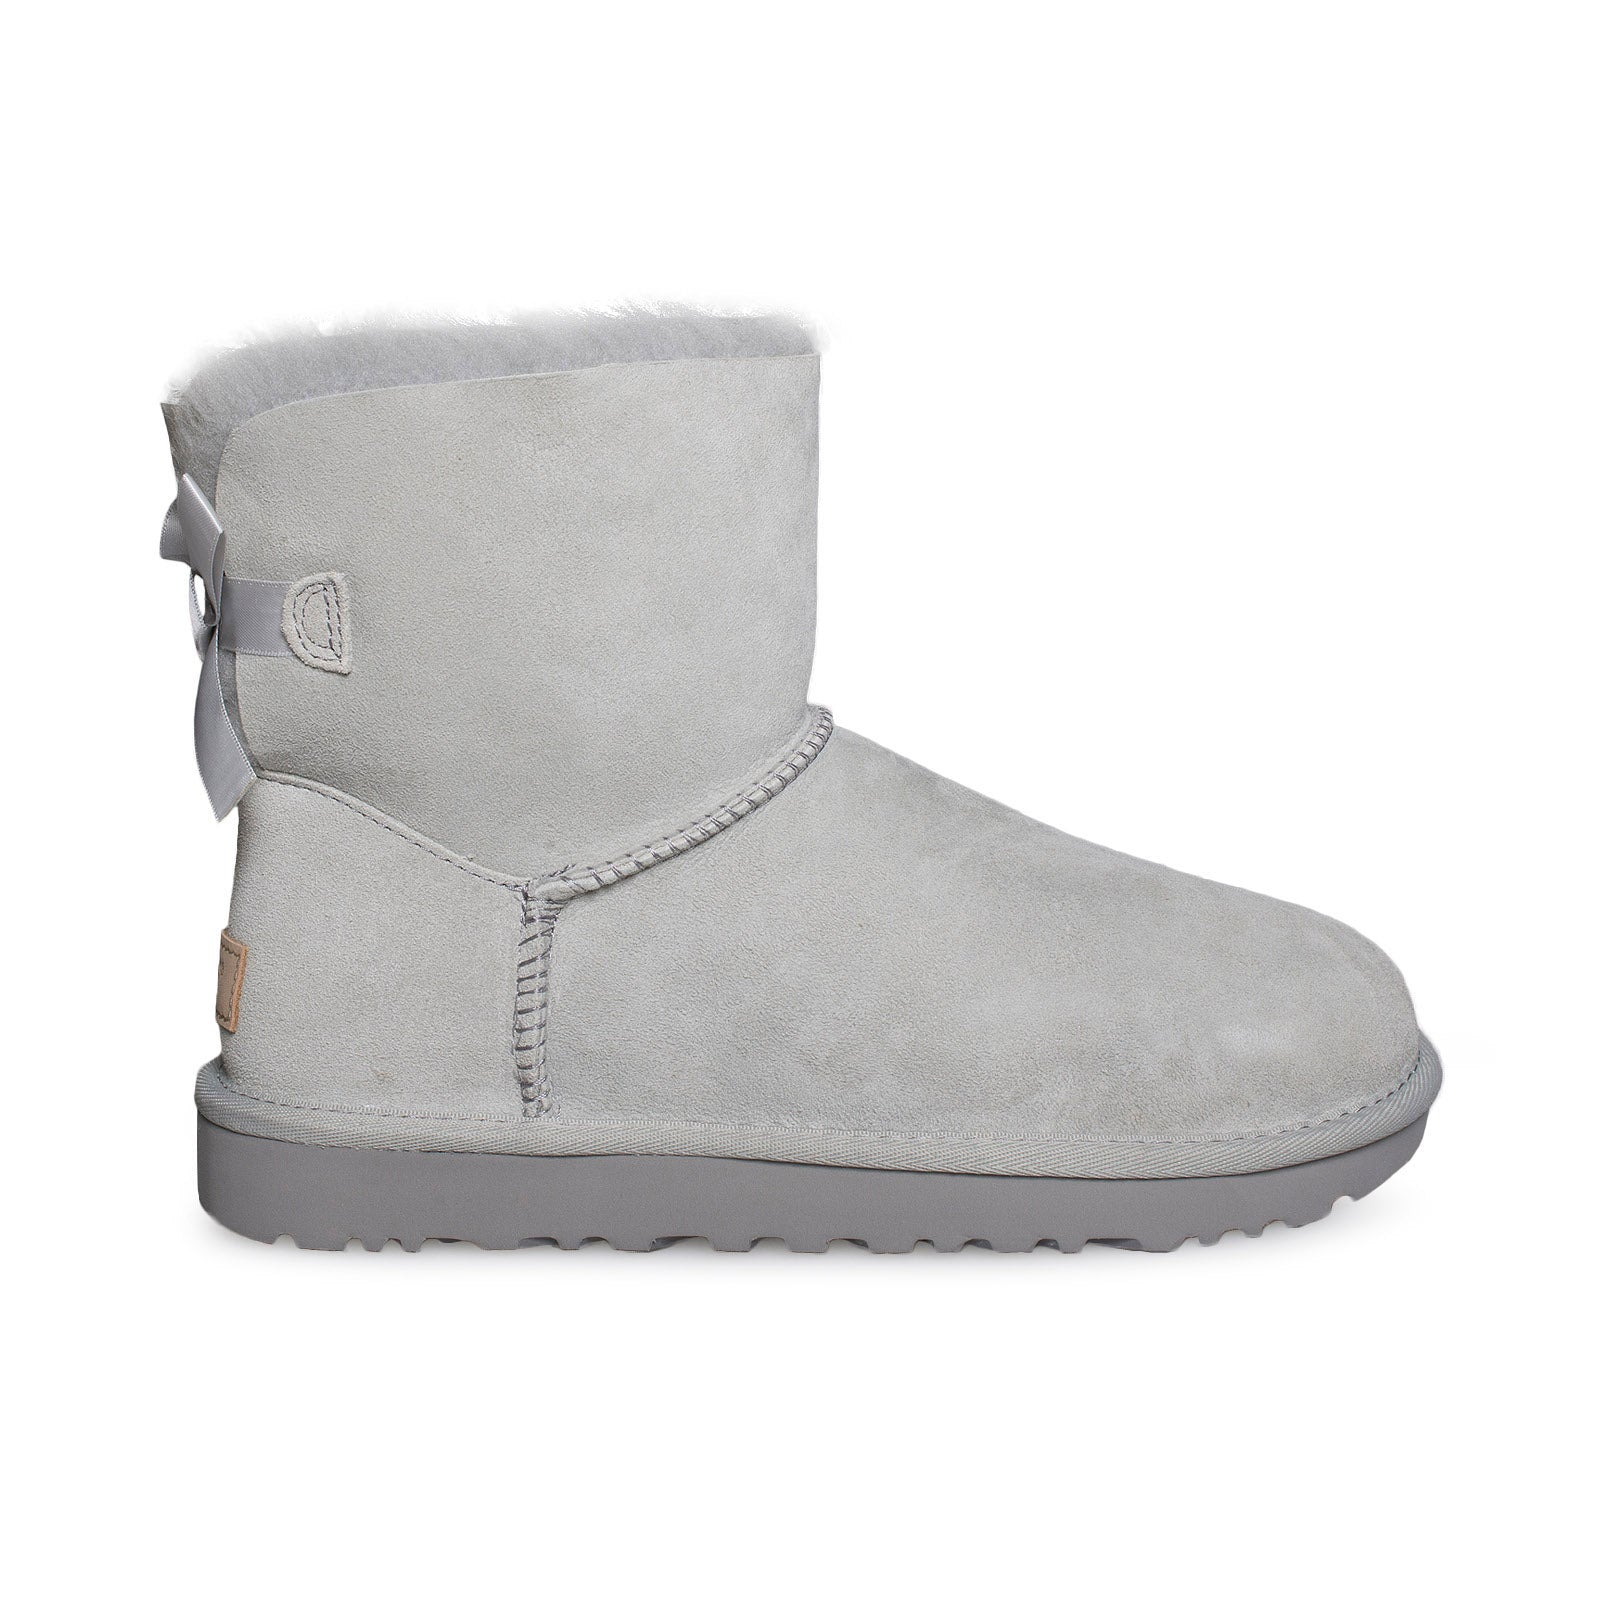 e9da6237ae8 UGG Mini Bailey Bow II Grey Violet Boots - Women's